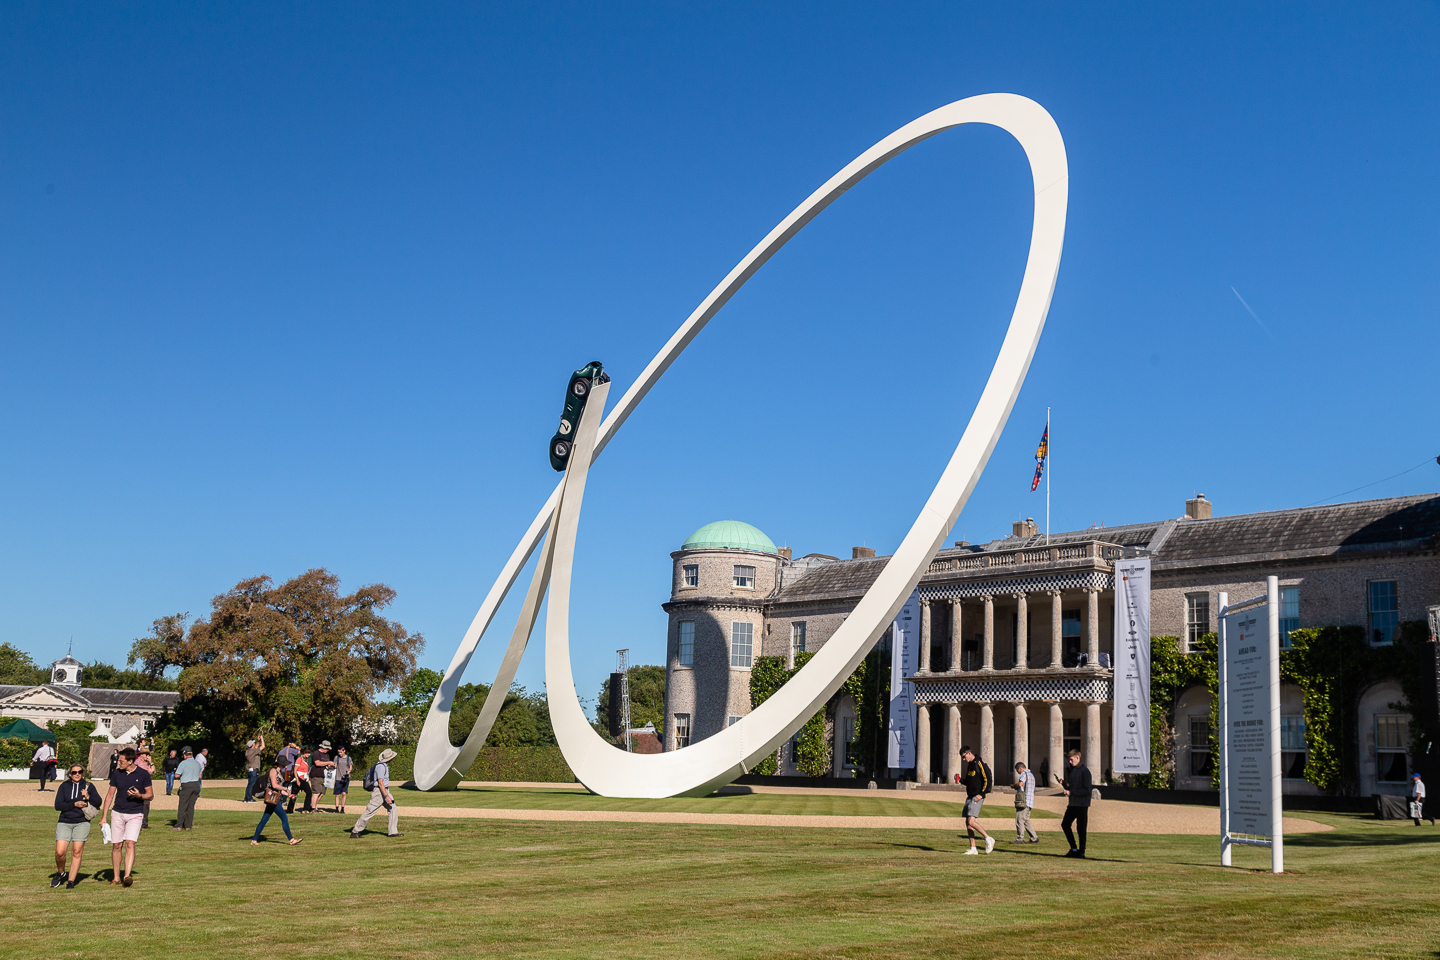 Central sculpture for 2019 Goodwood Festival of Speed